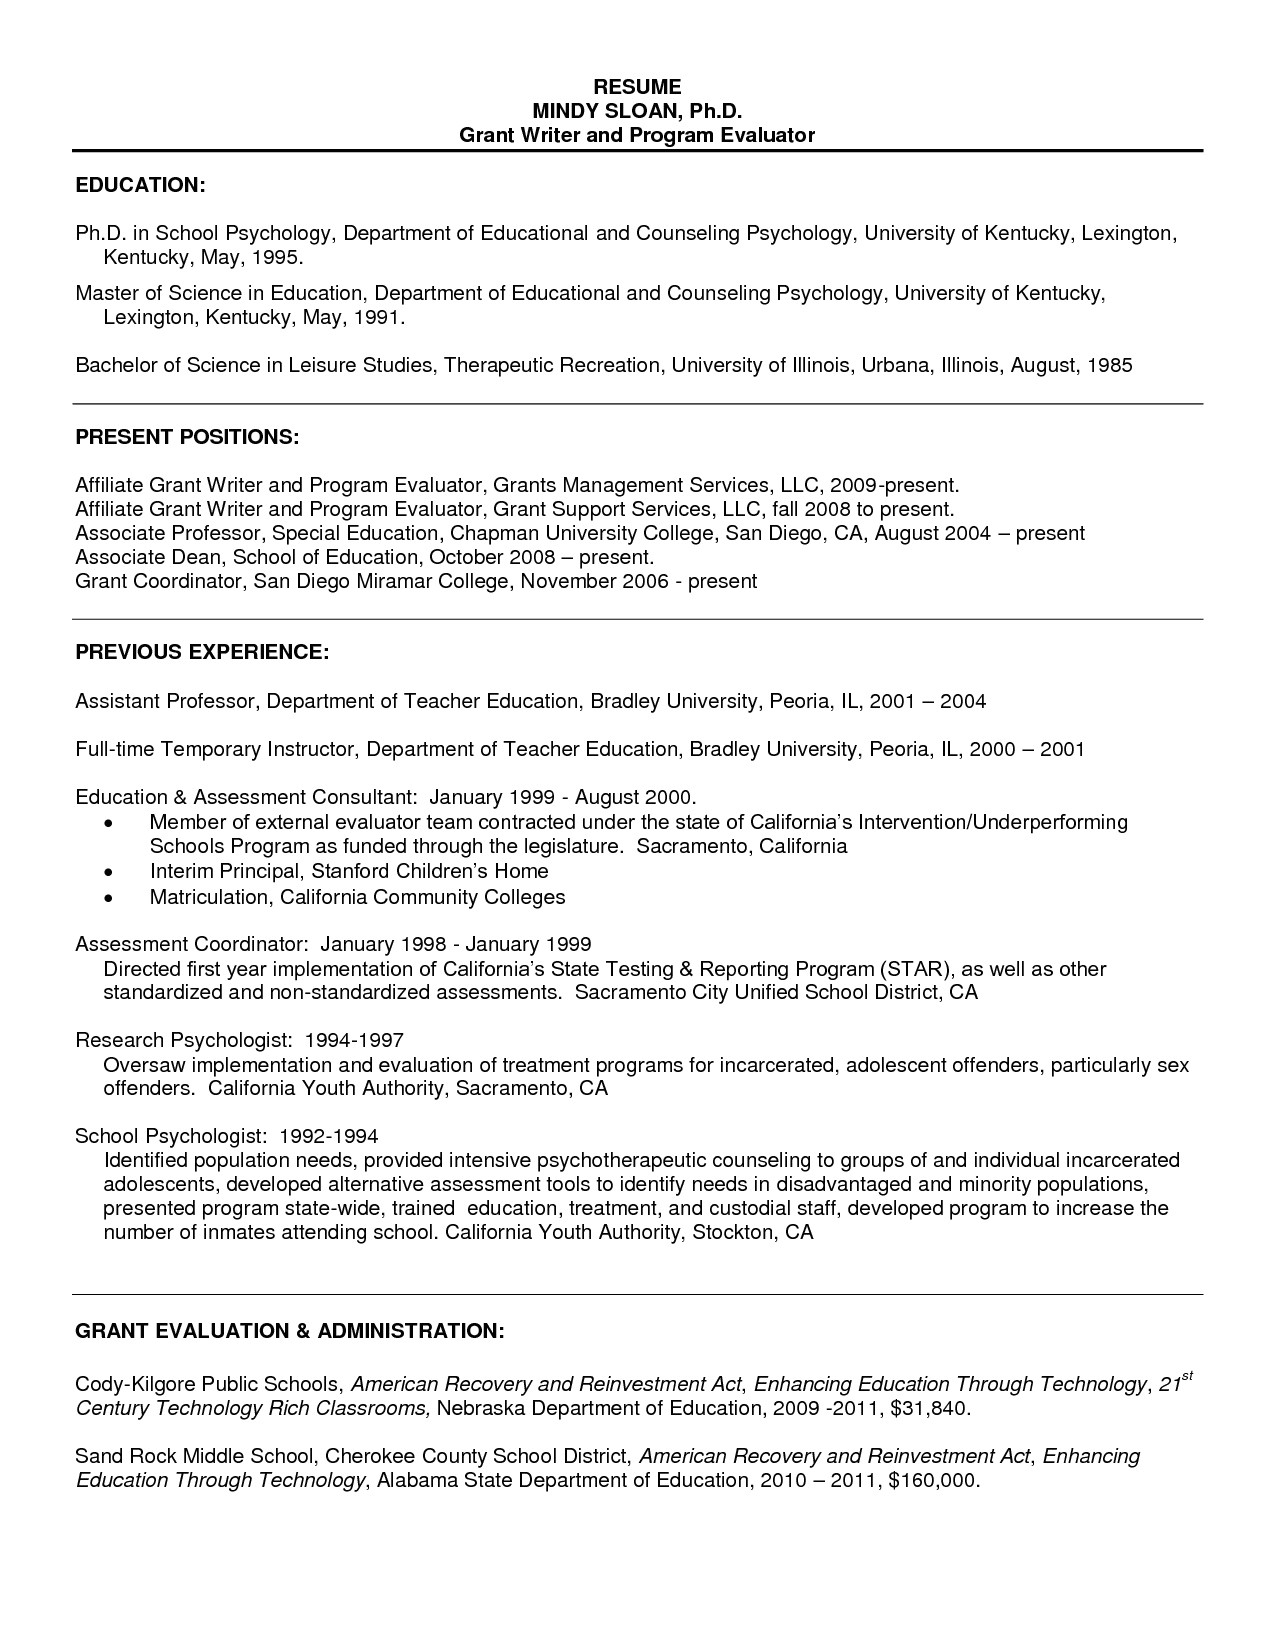 Sample Resume for Fresh Psychology Graduate Sample Resume Psychology for Graduate School Resume